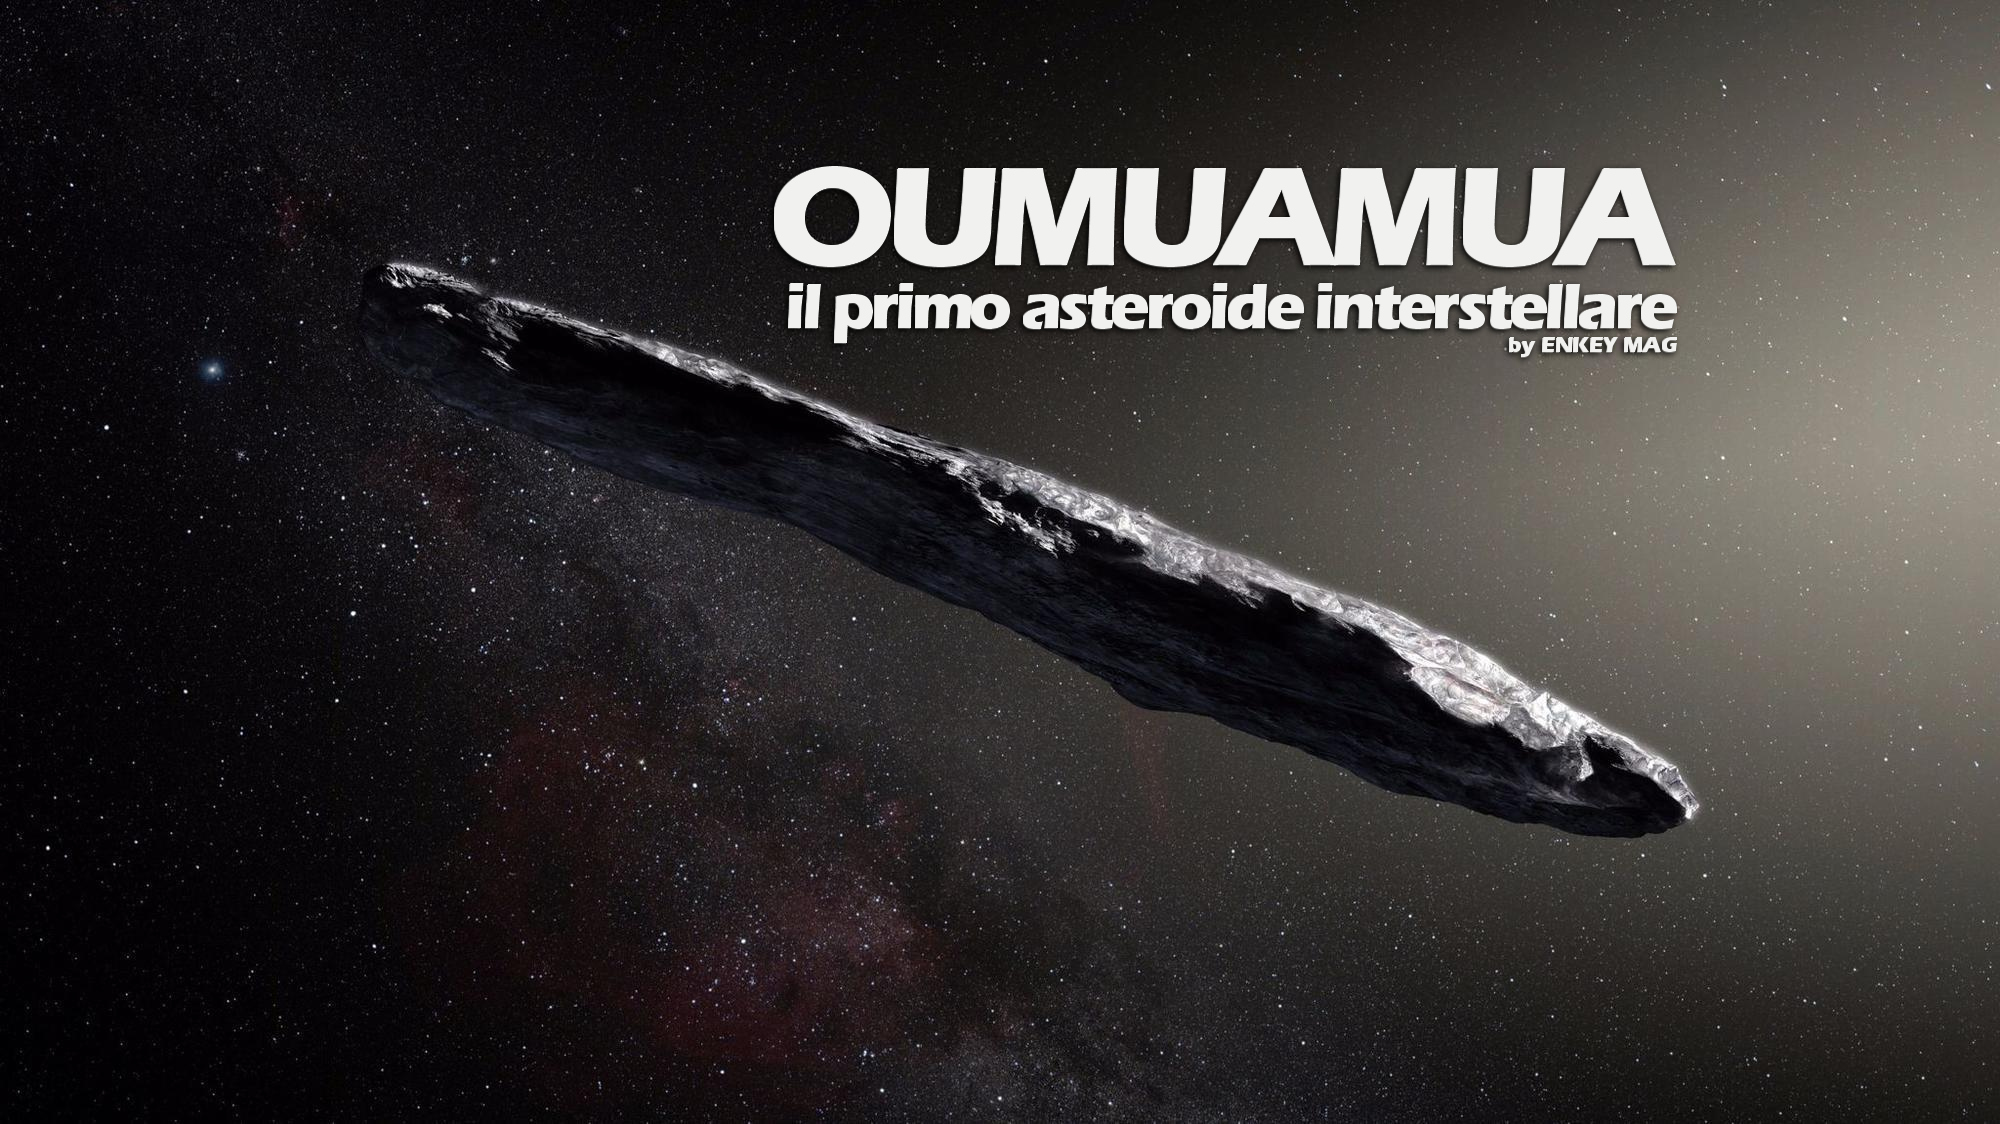 oumuamua - photo #8